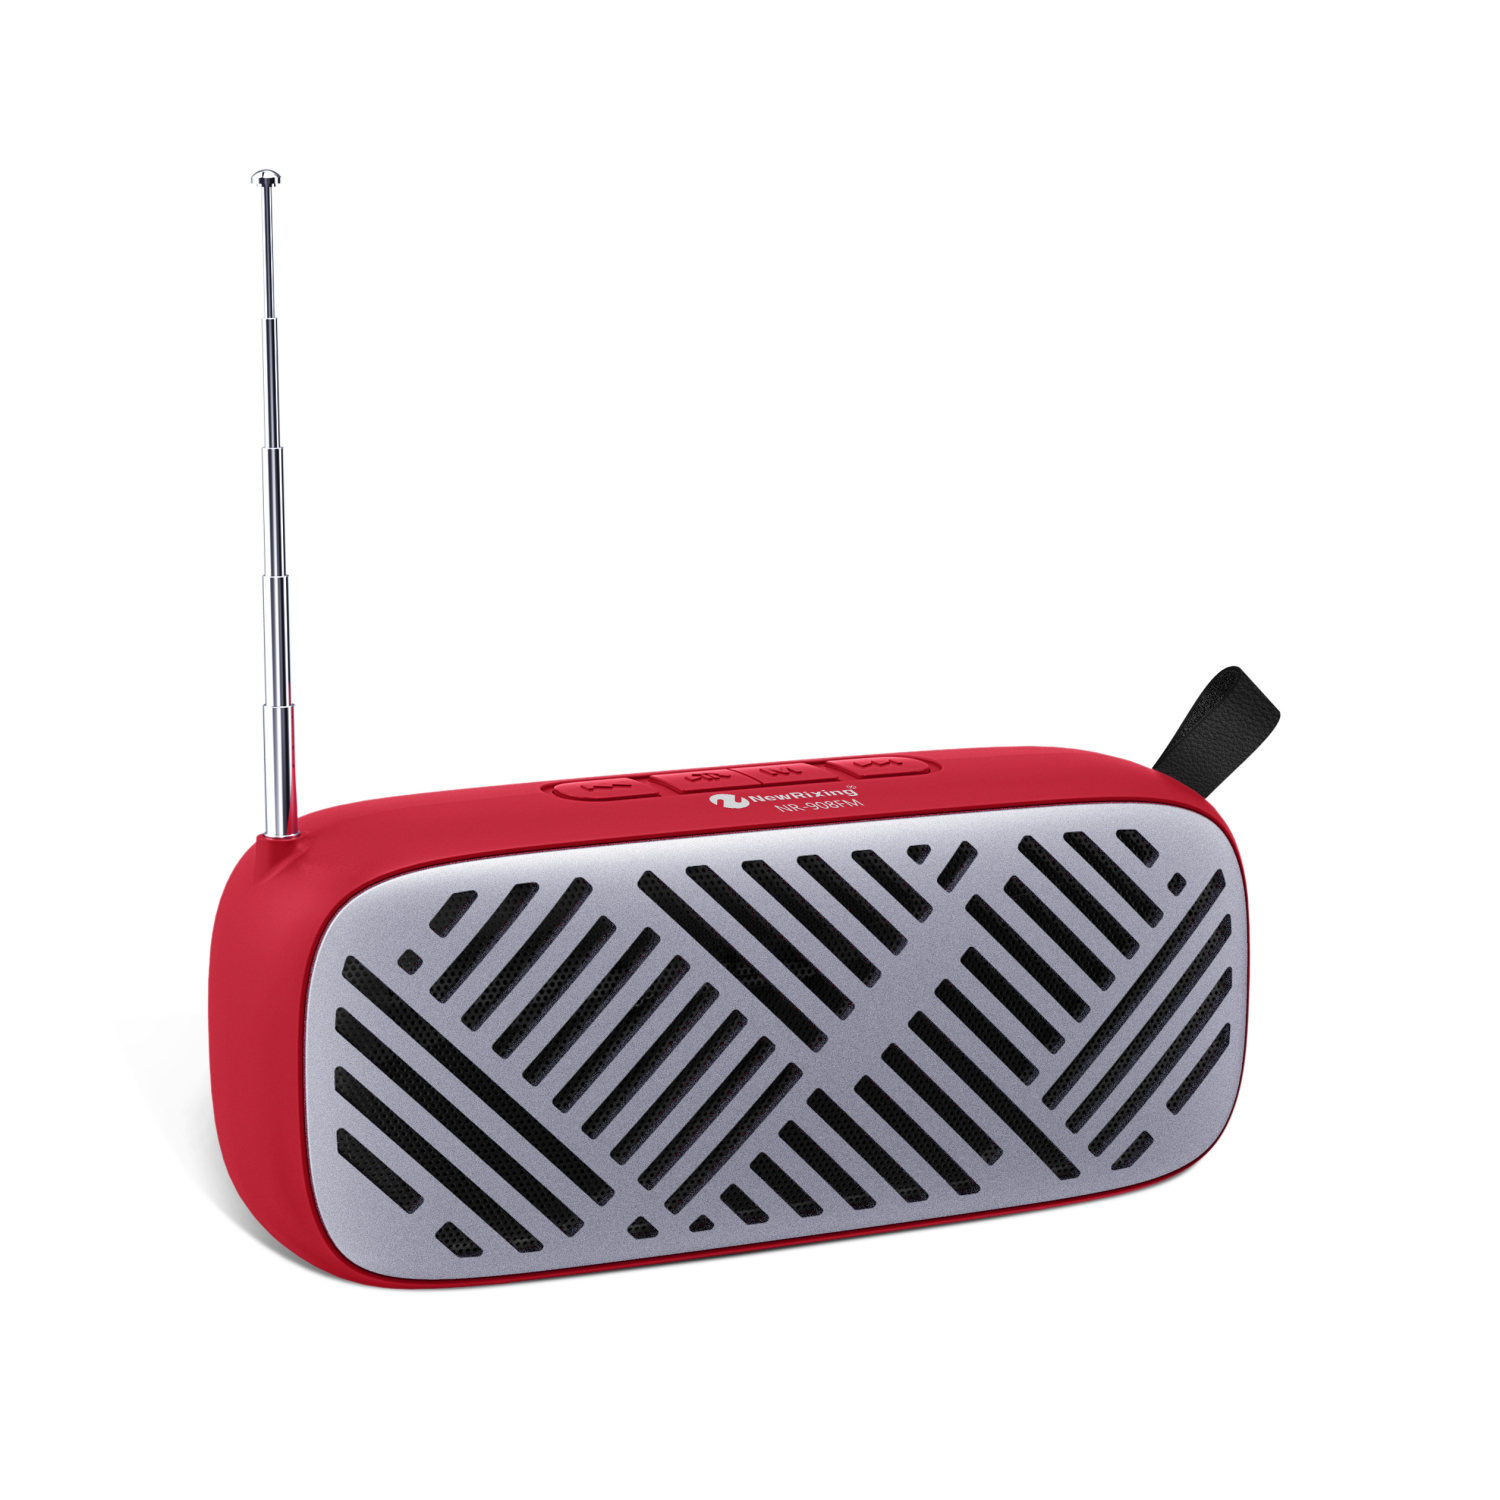 NewRixing NR-908FM Small Bluetooth Speaker Exporters